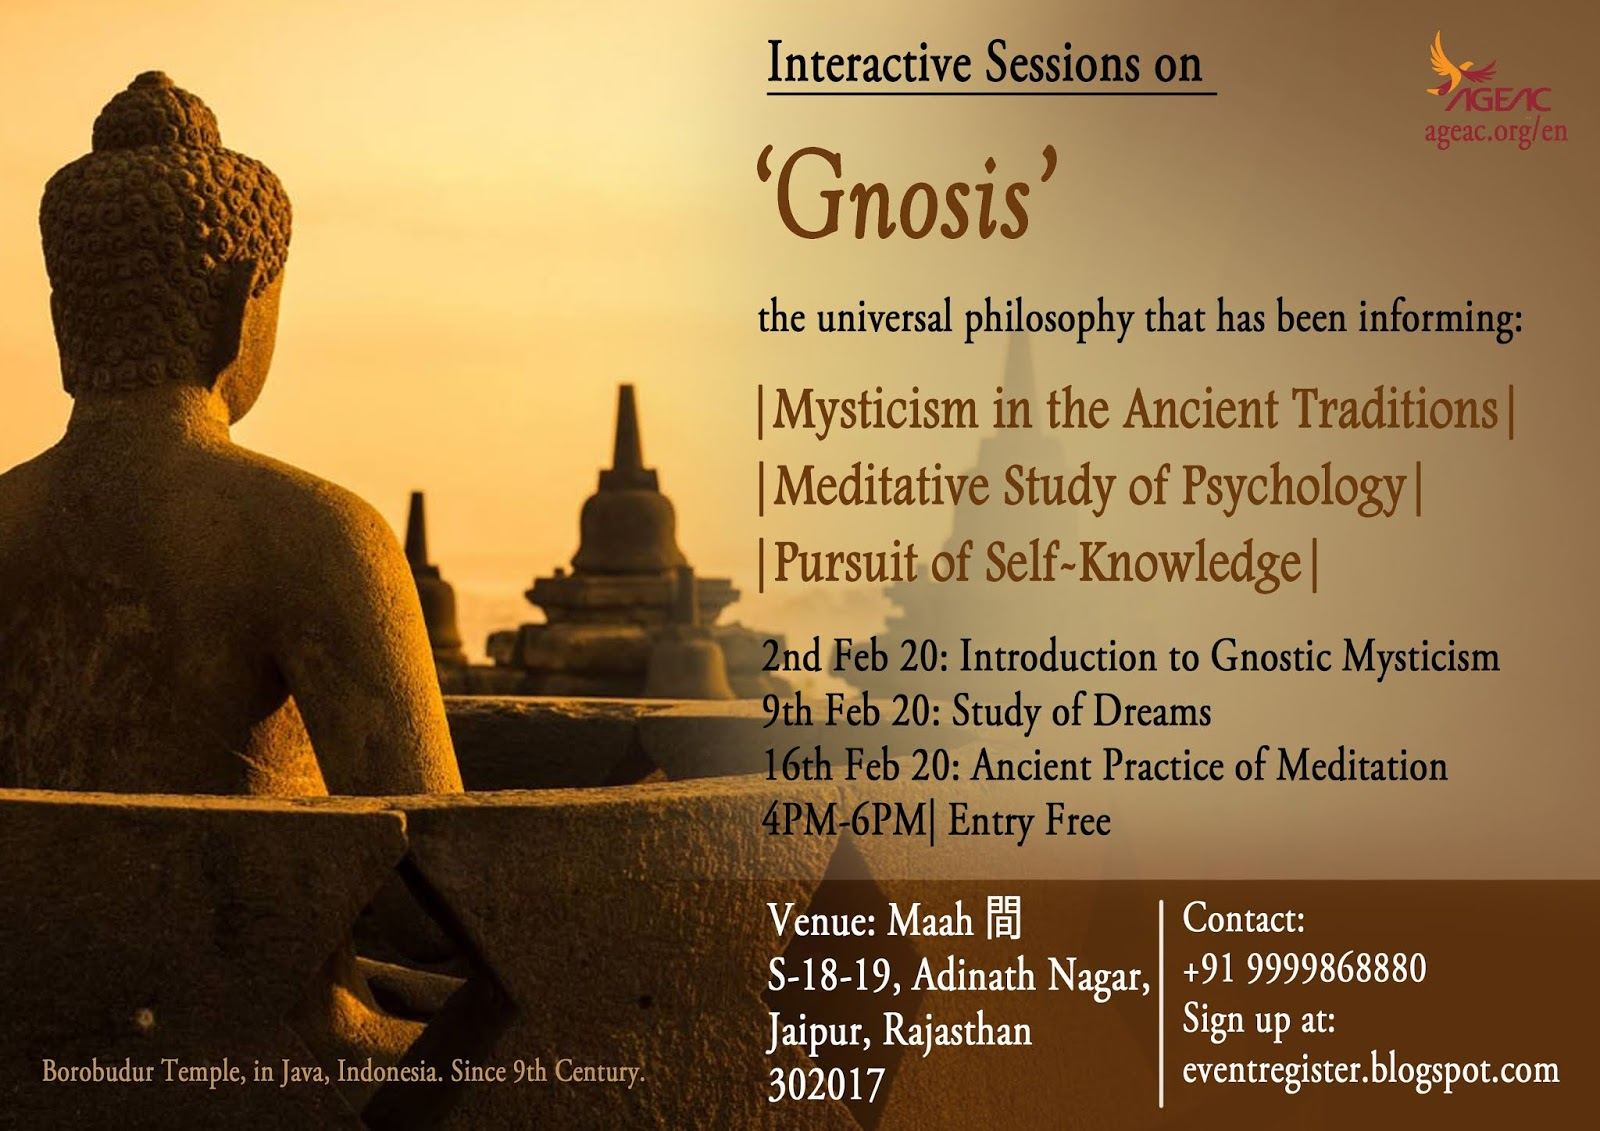 Gnostic Sessions at Maah